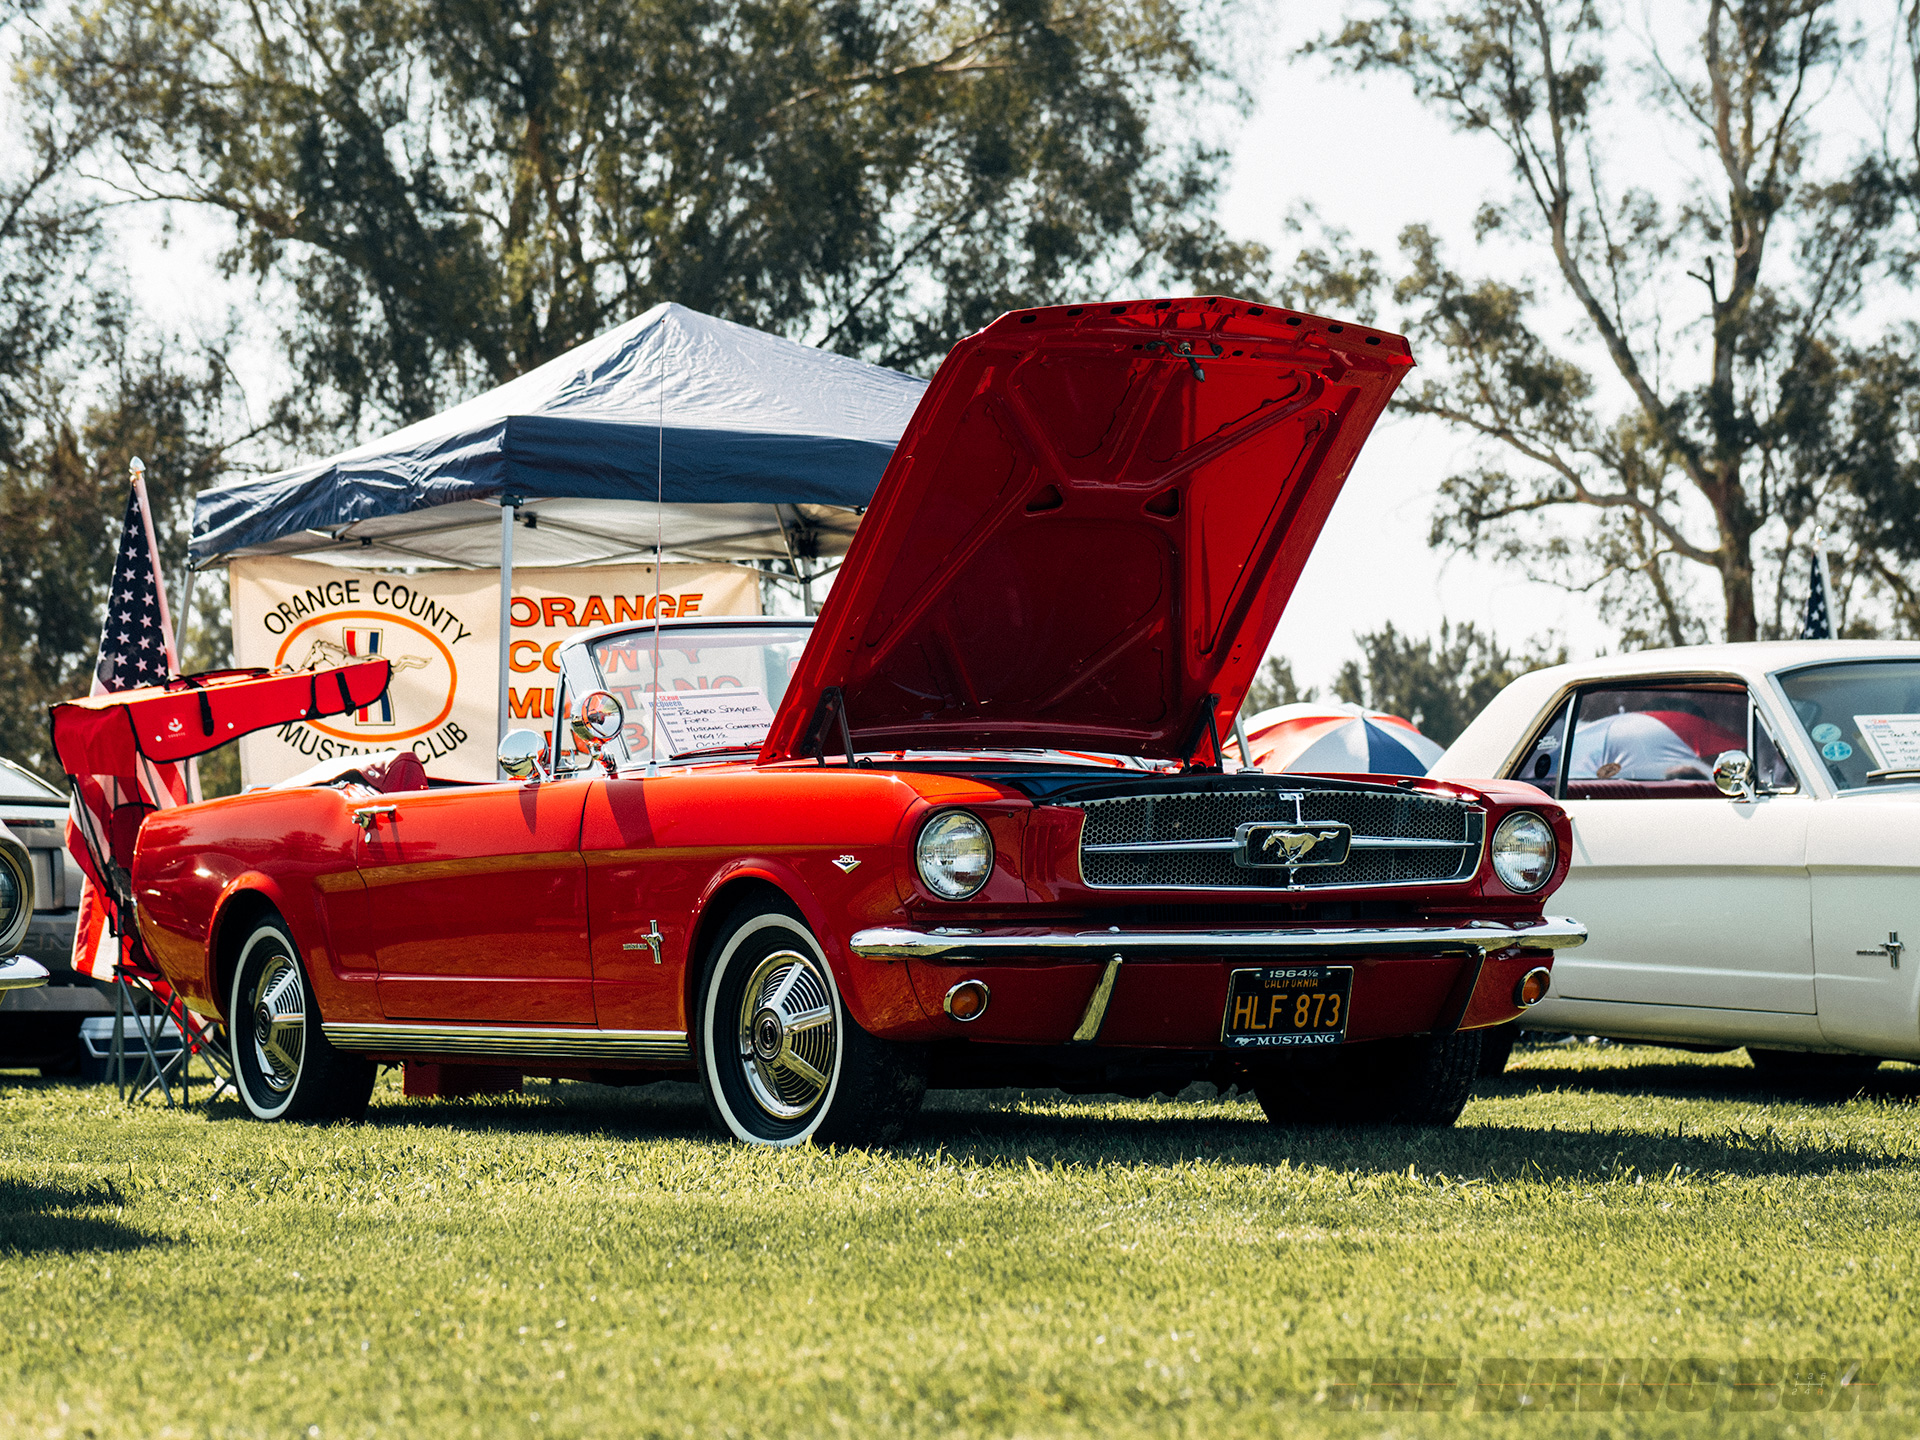 Three-quarter view of the 1964 1/2 Mustang